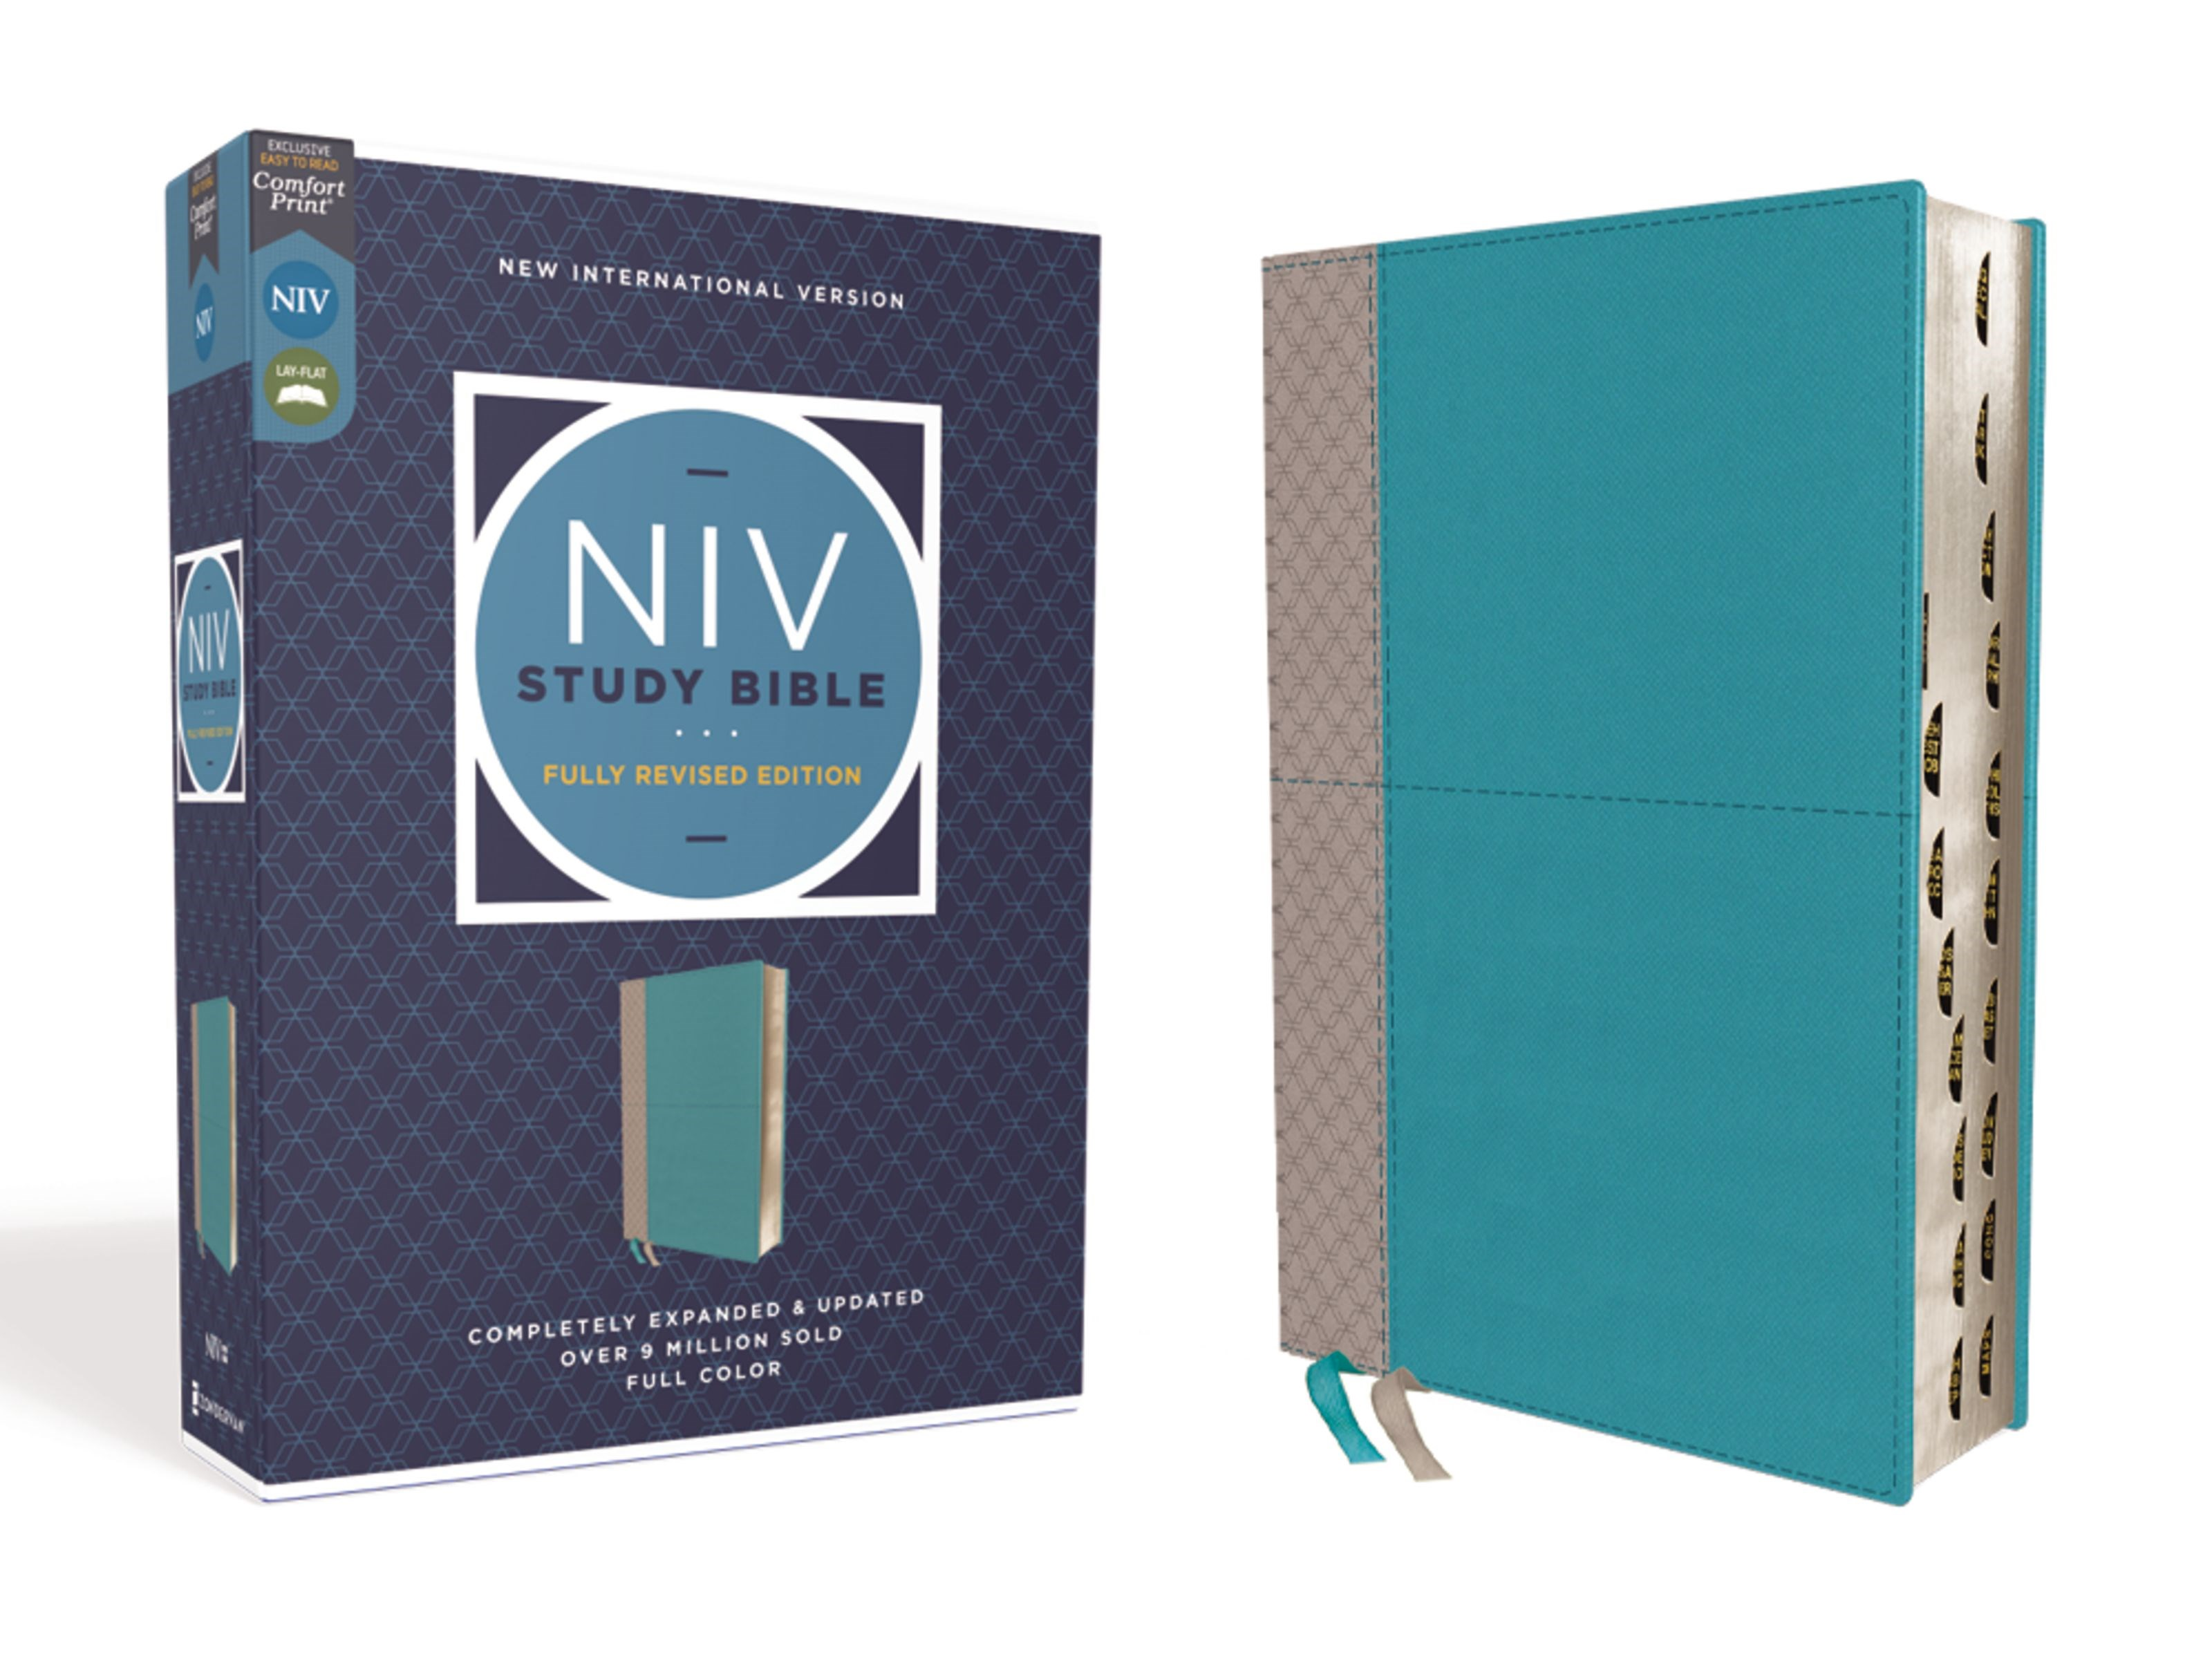 NIV Study Bible (Fully Revised Edition) (Comfort Print)-Teal/Gray Leathersoft Indexed